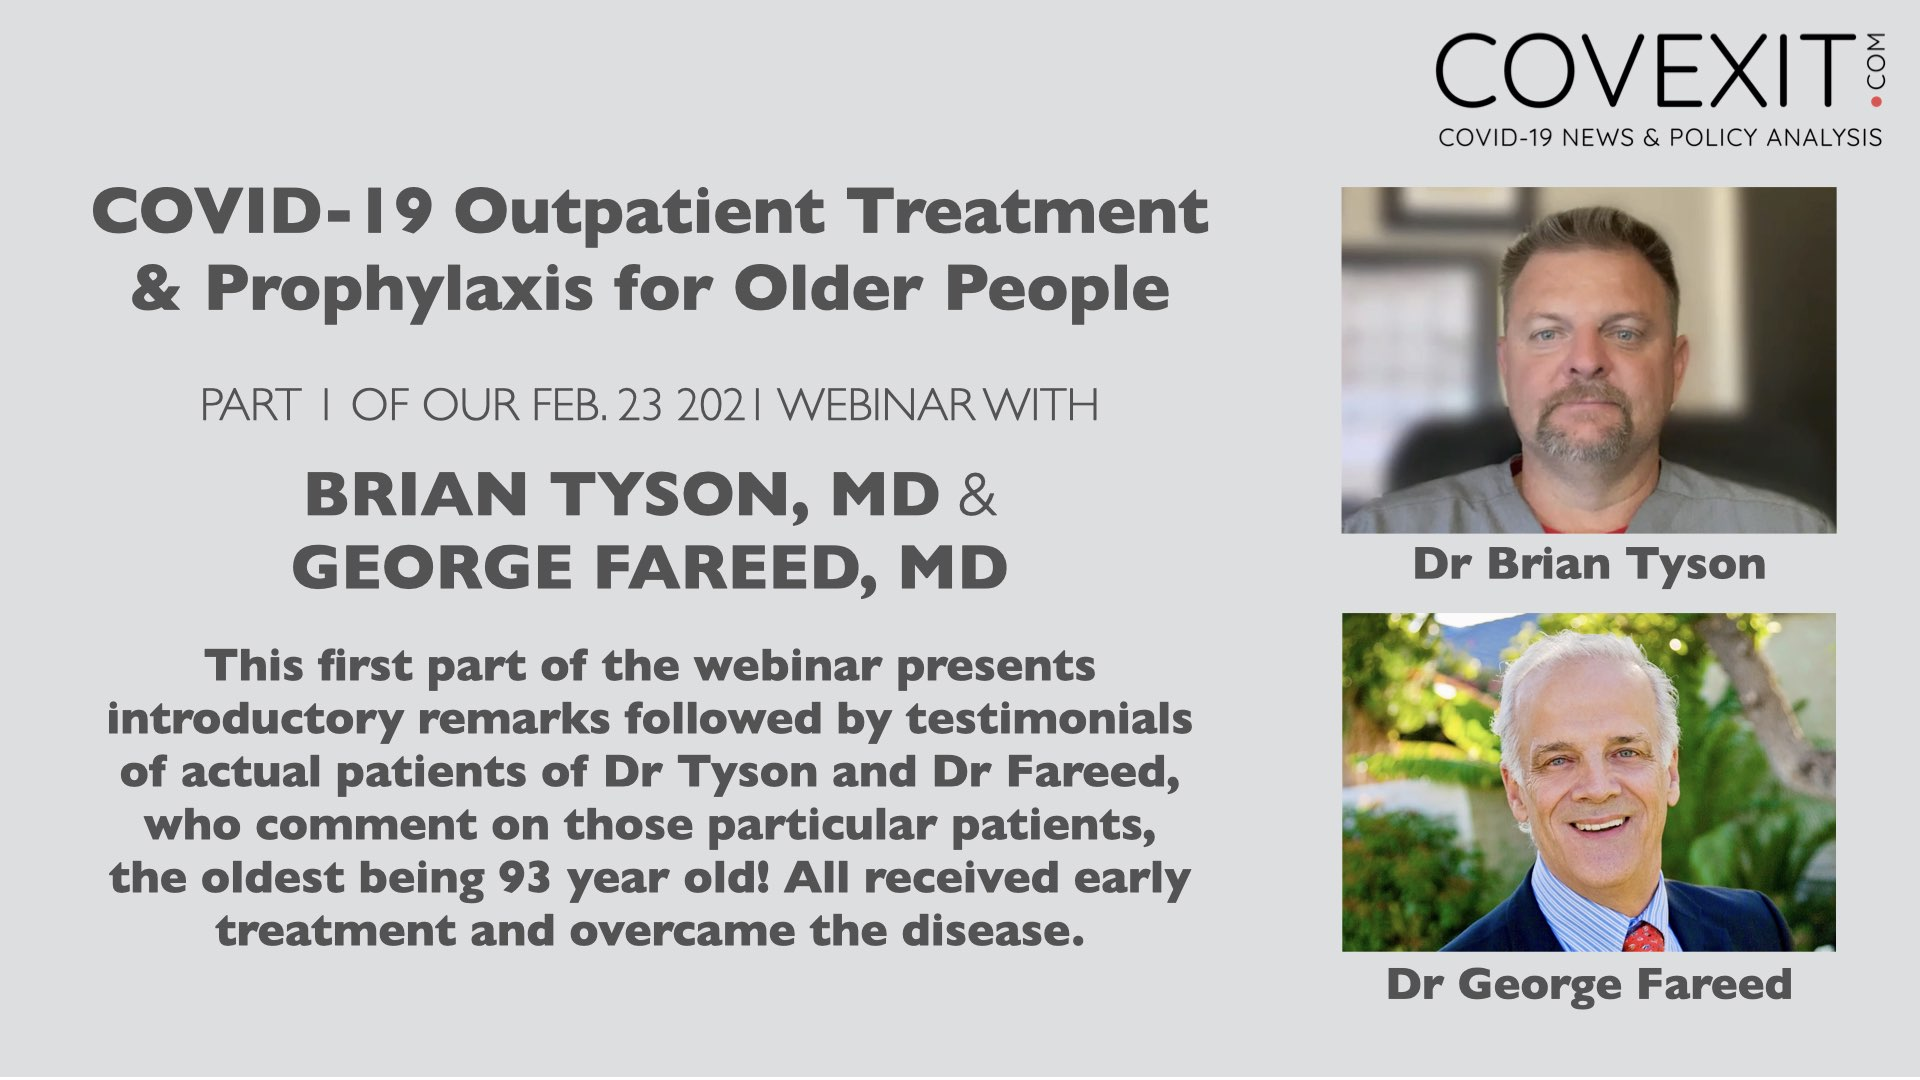 Webinar with Dr Brian Tyson and Dr George Fareed - Part 1